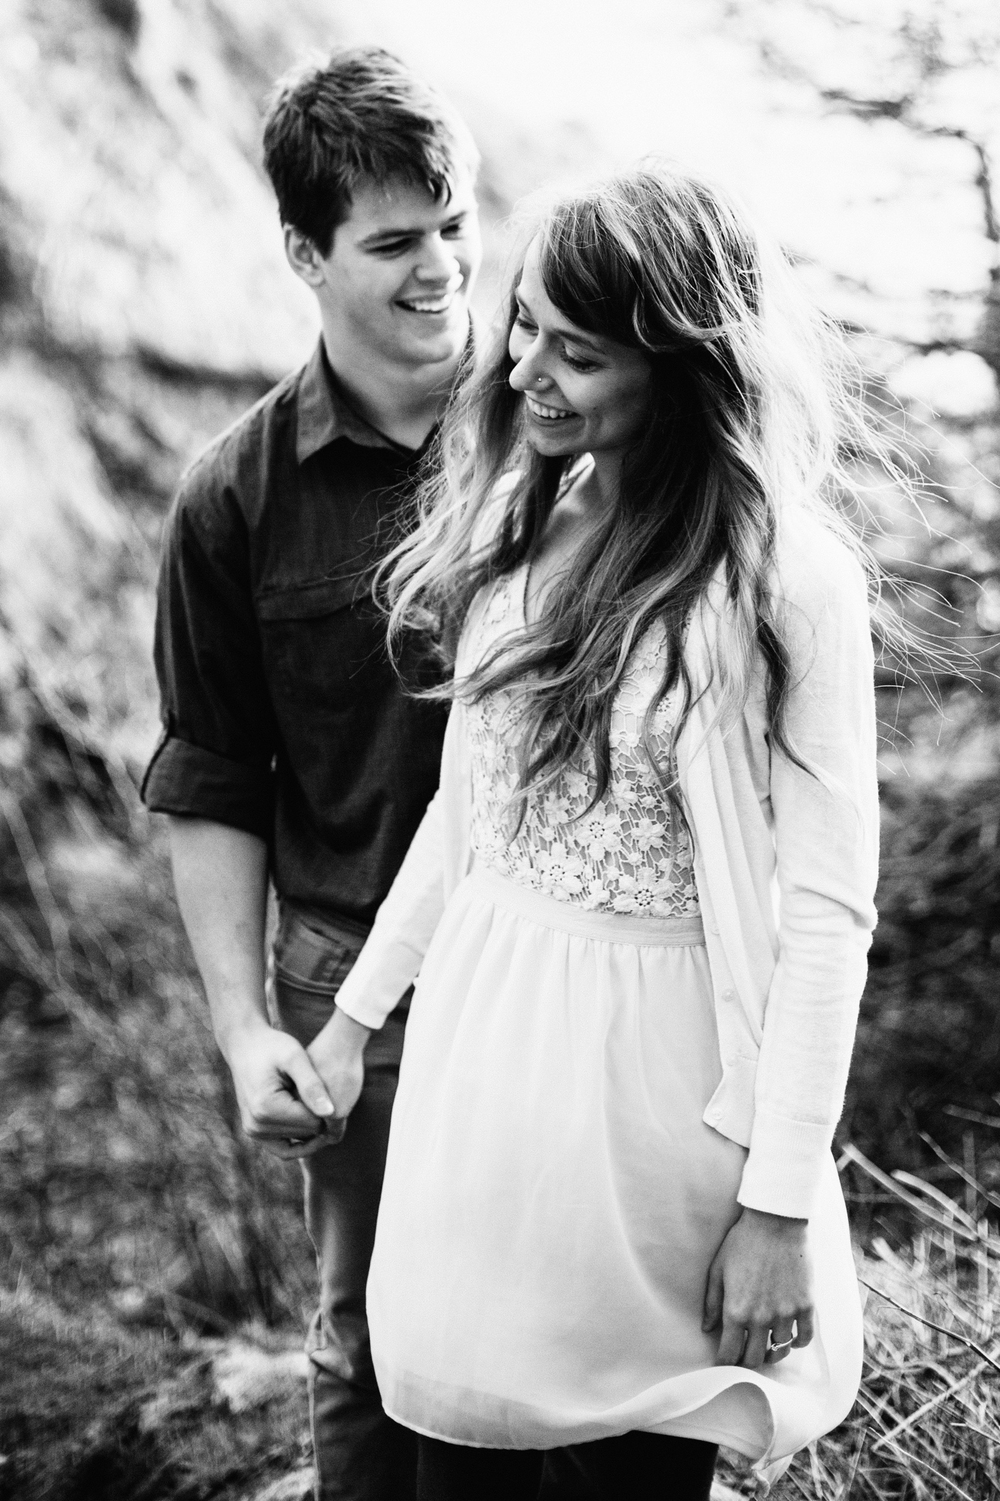 Vancouver Whytecliff Park Engagement Photographer - Emmy Lou Virginia Photography-17.jpg